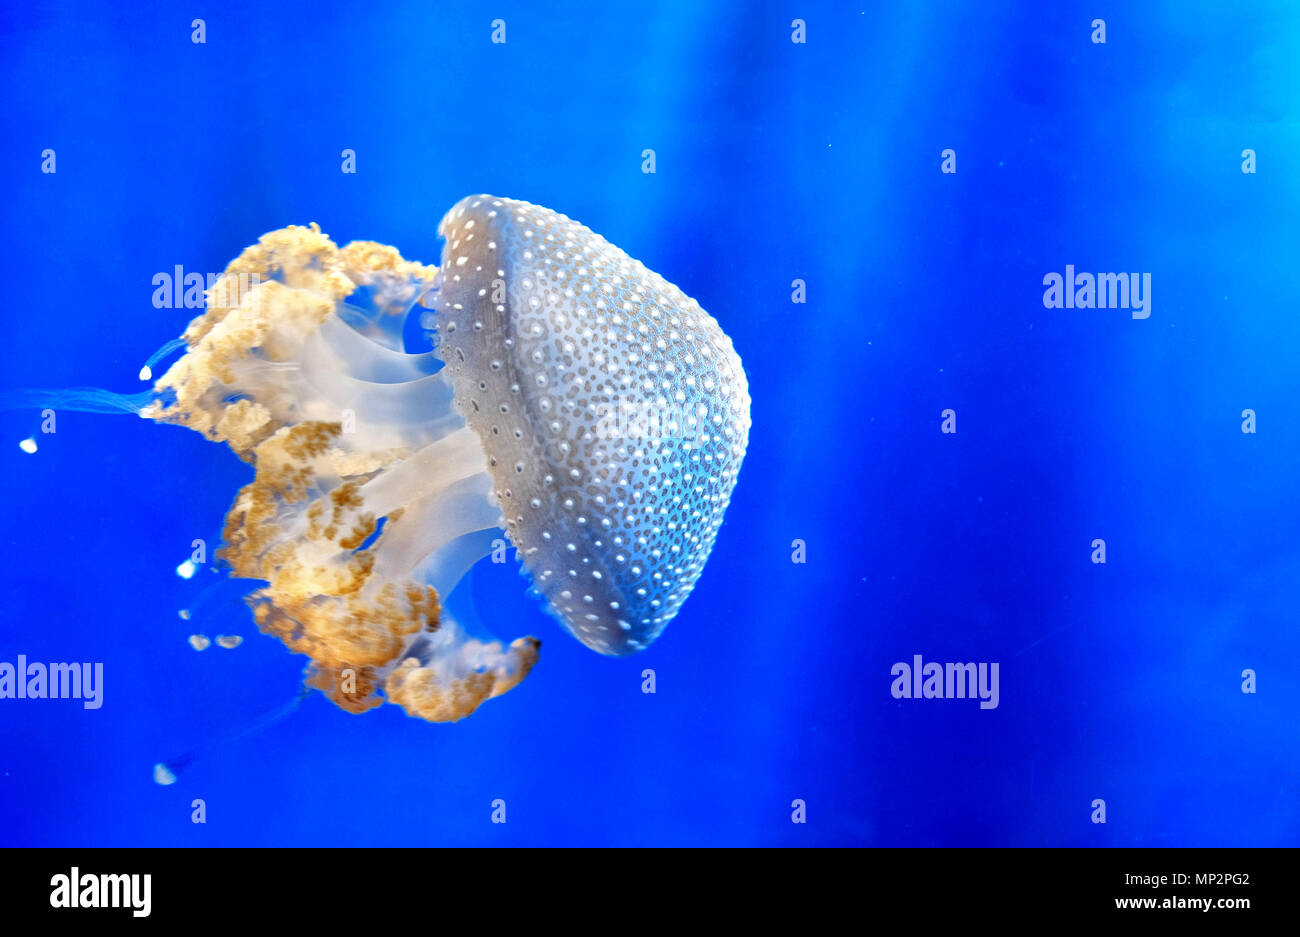 White spotted jellyfish Floating bell Australian spotted jellyfish medusa deep blue underwater background - Stock Image